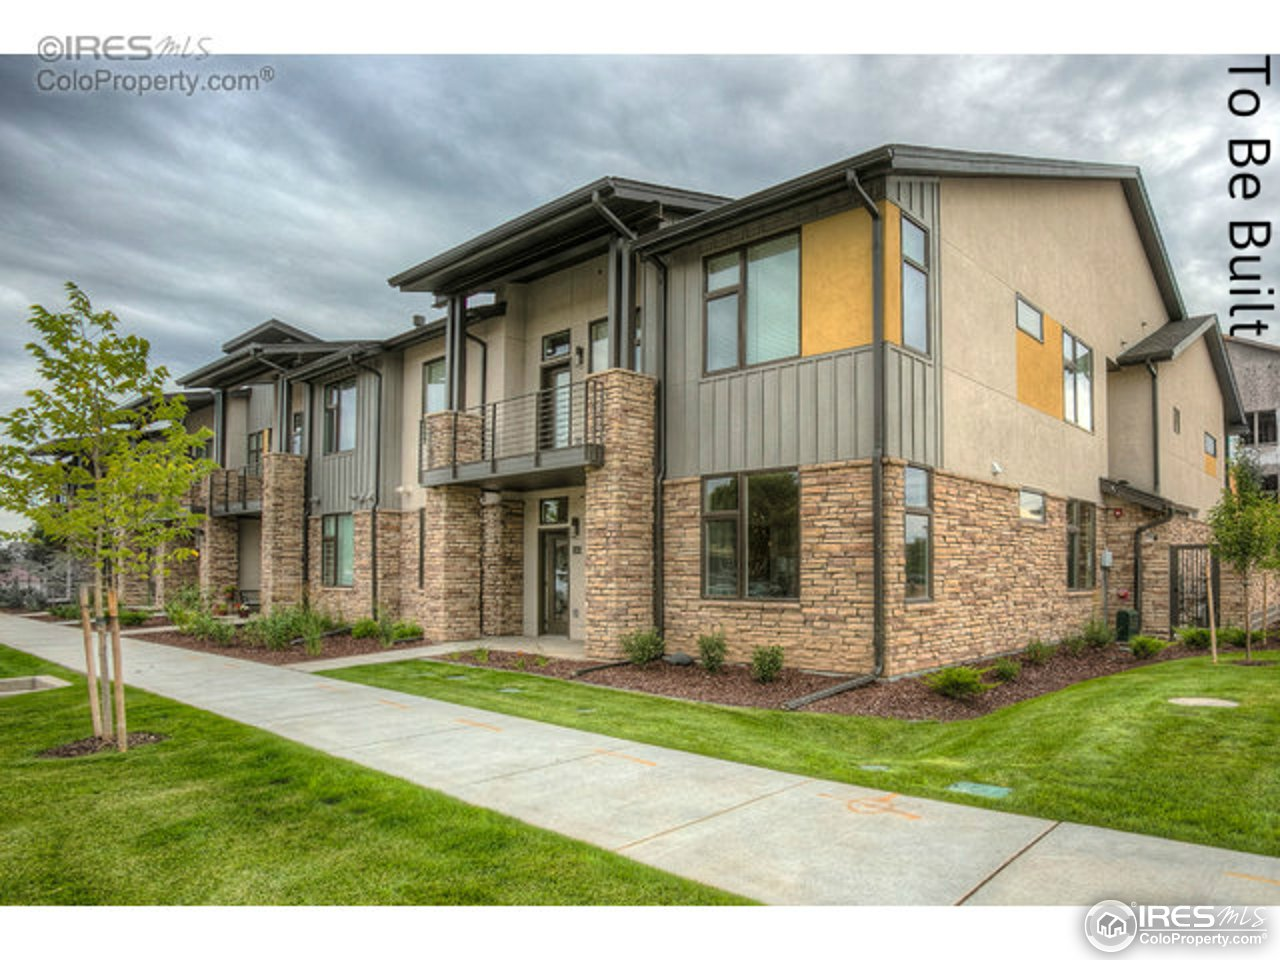 2727 Iowa Dr 101, Fort Collins, CO 80525